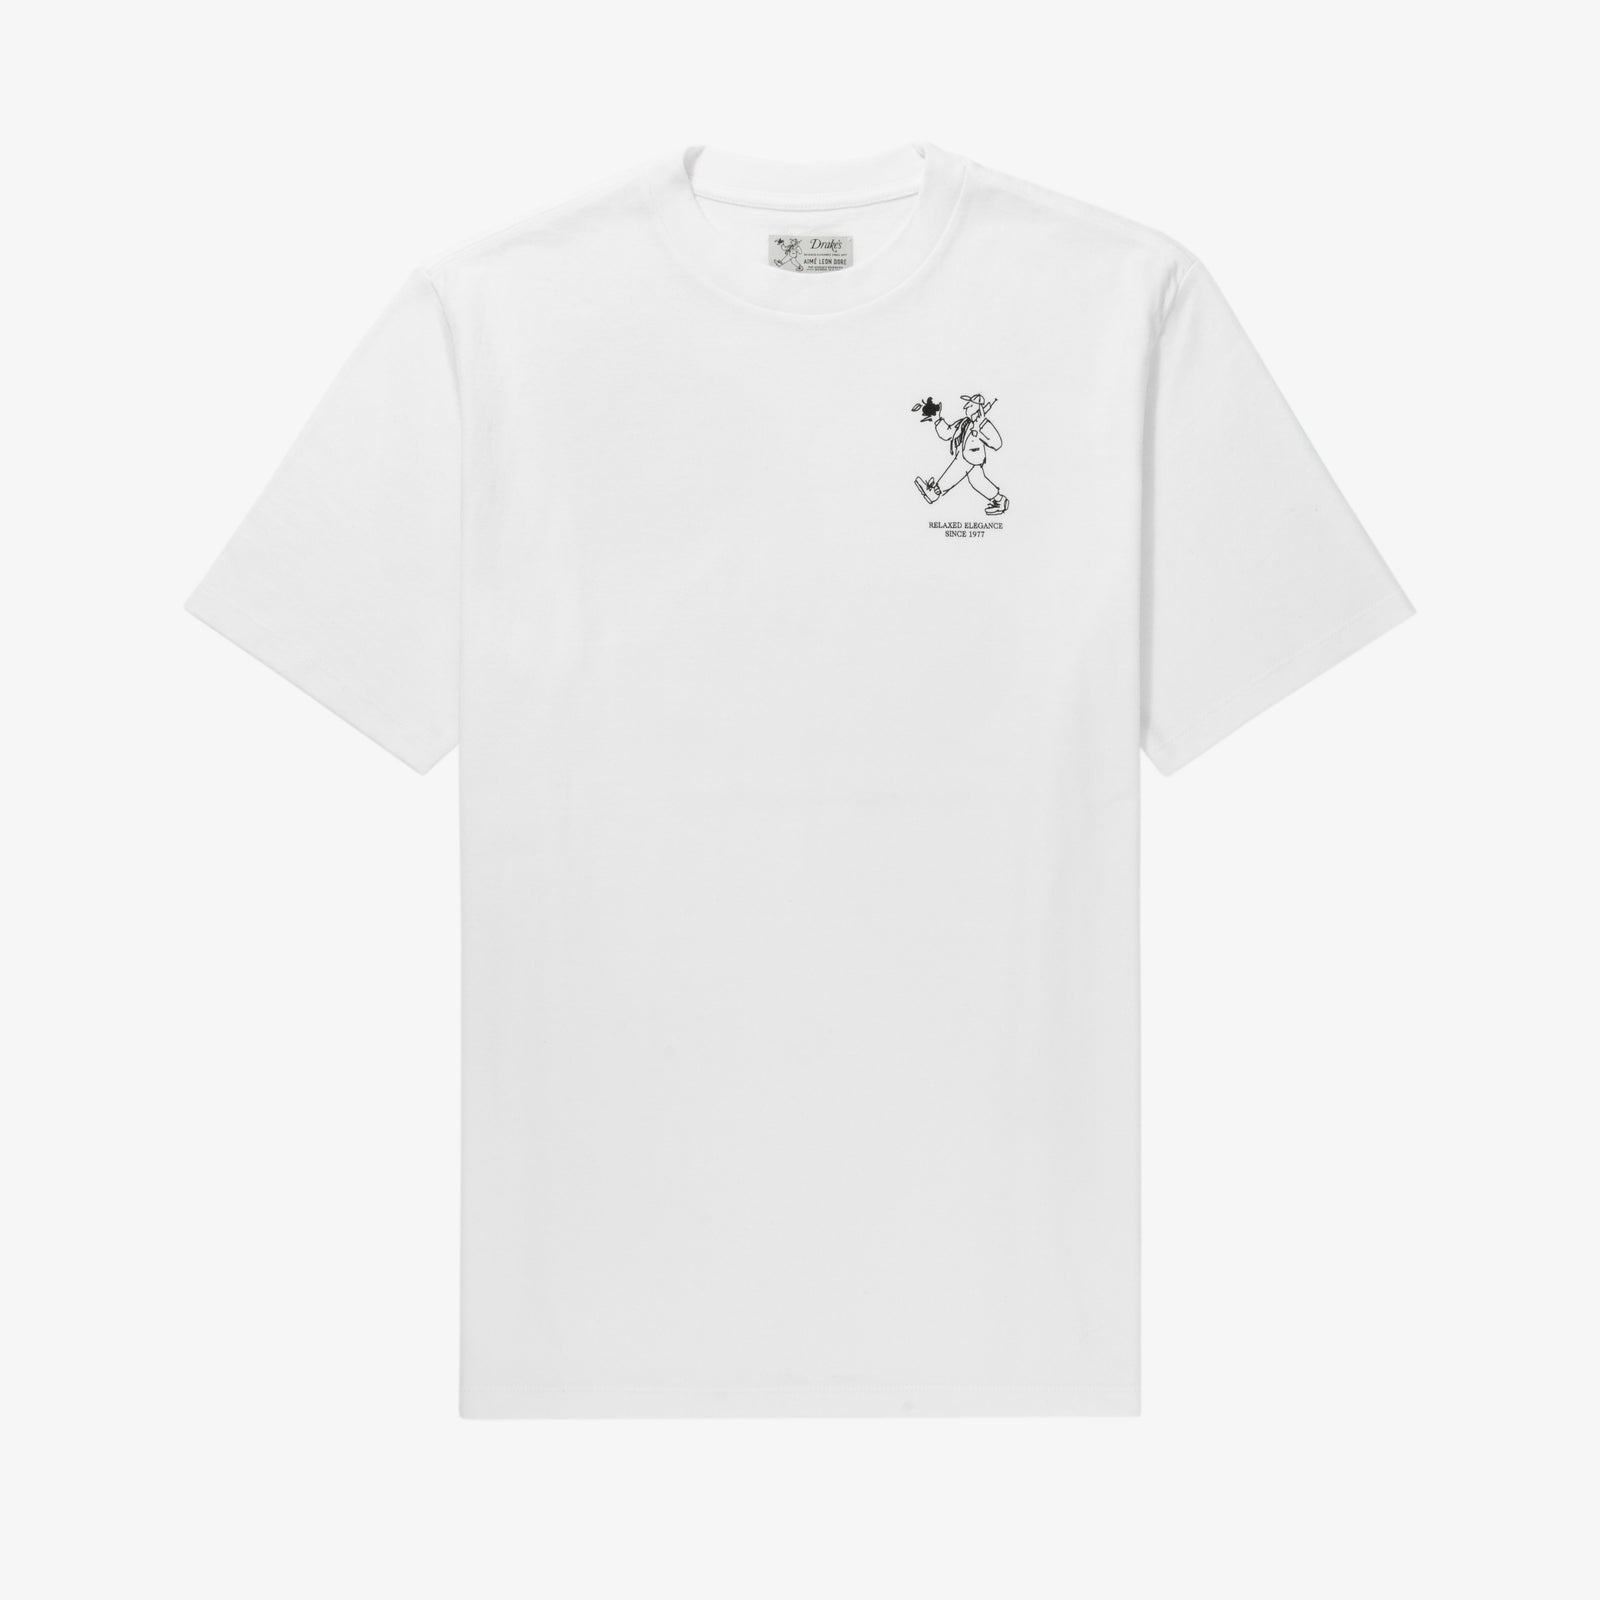 ALD / Drake's Graphic Tee